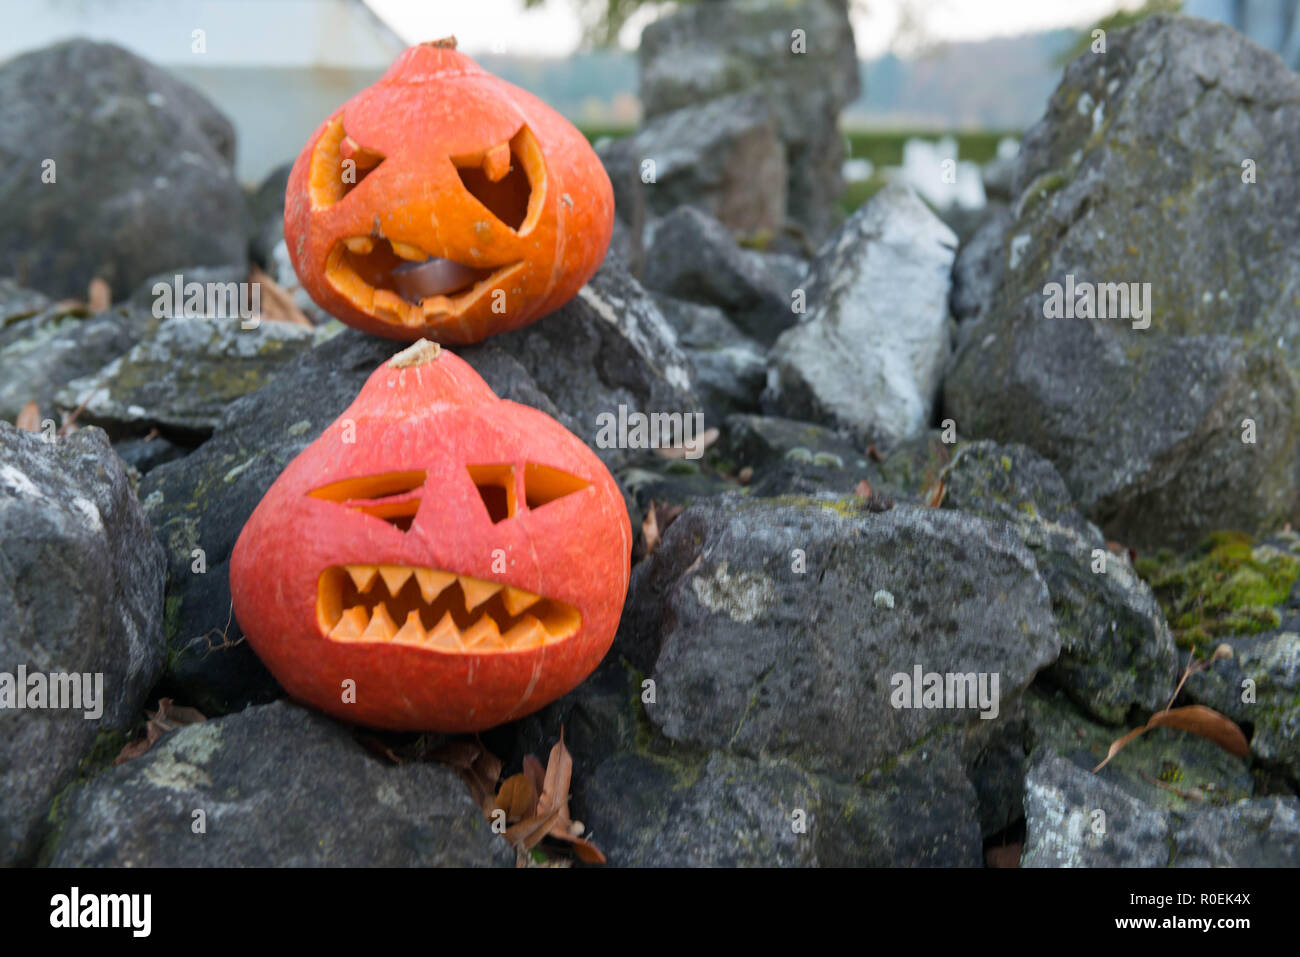 Two carved pumpkings on rocks for Haloween celebration Stock Photo